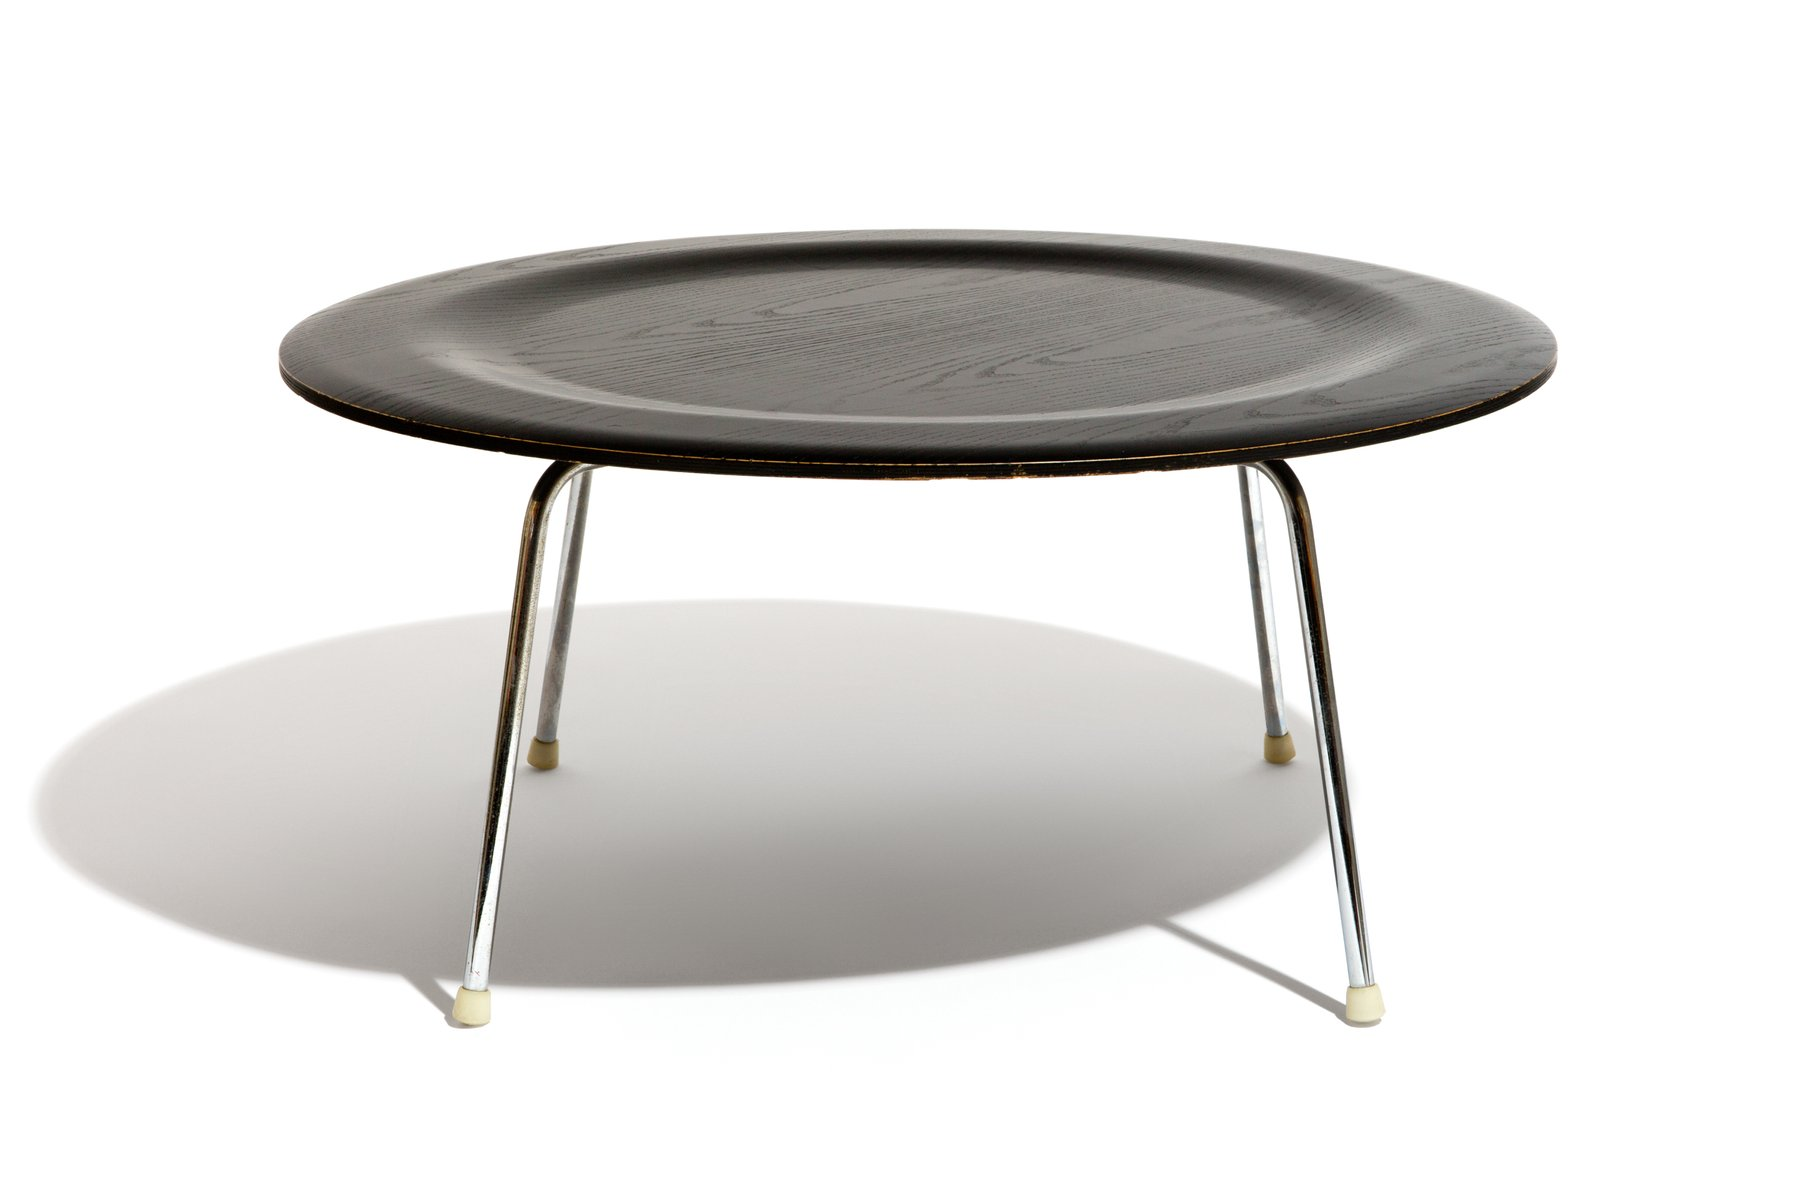 Vintage Four Star Base Coffee Table by Charles & Ray Eames for